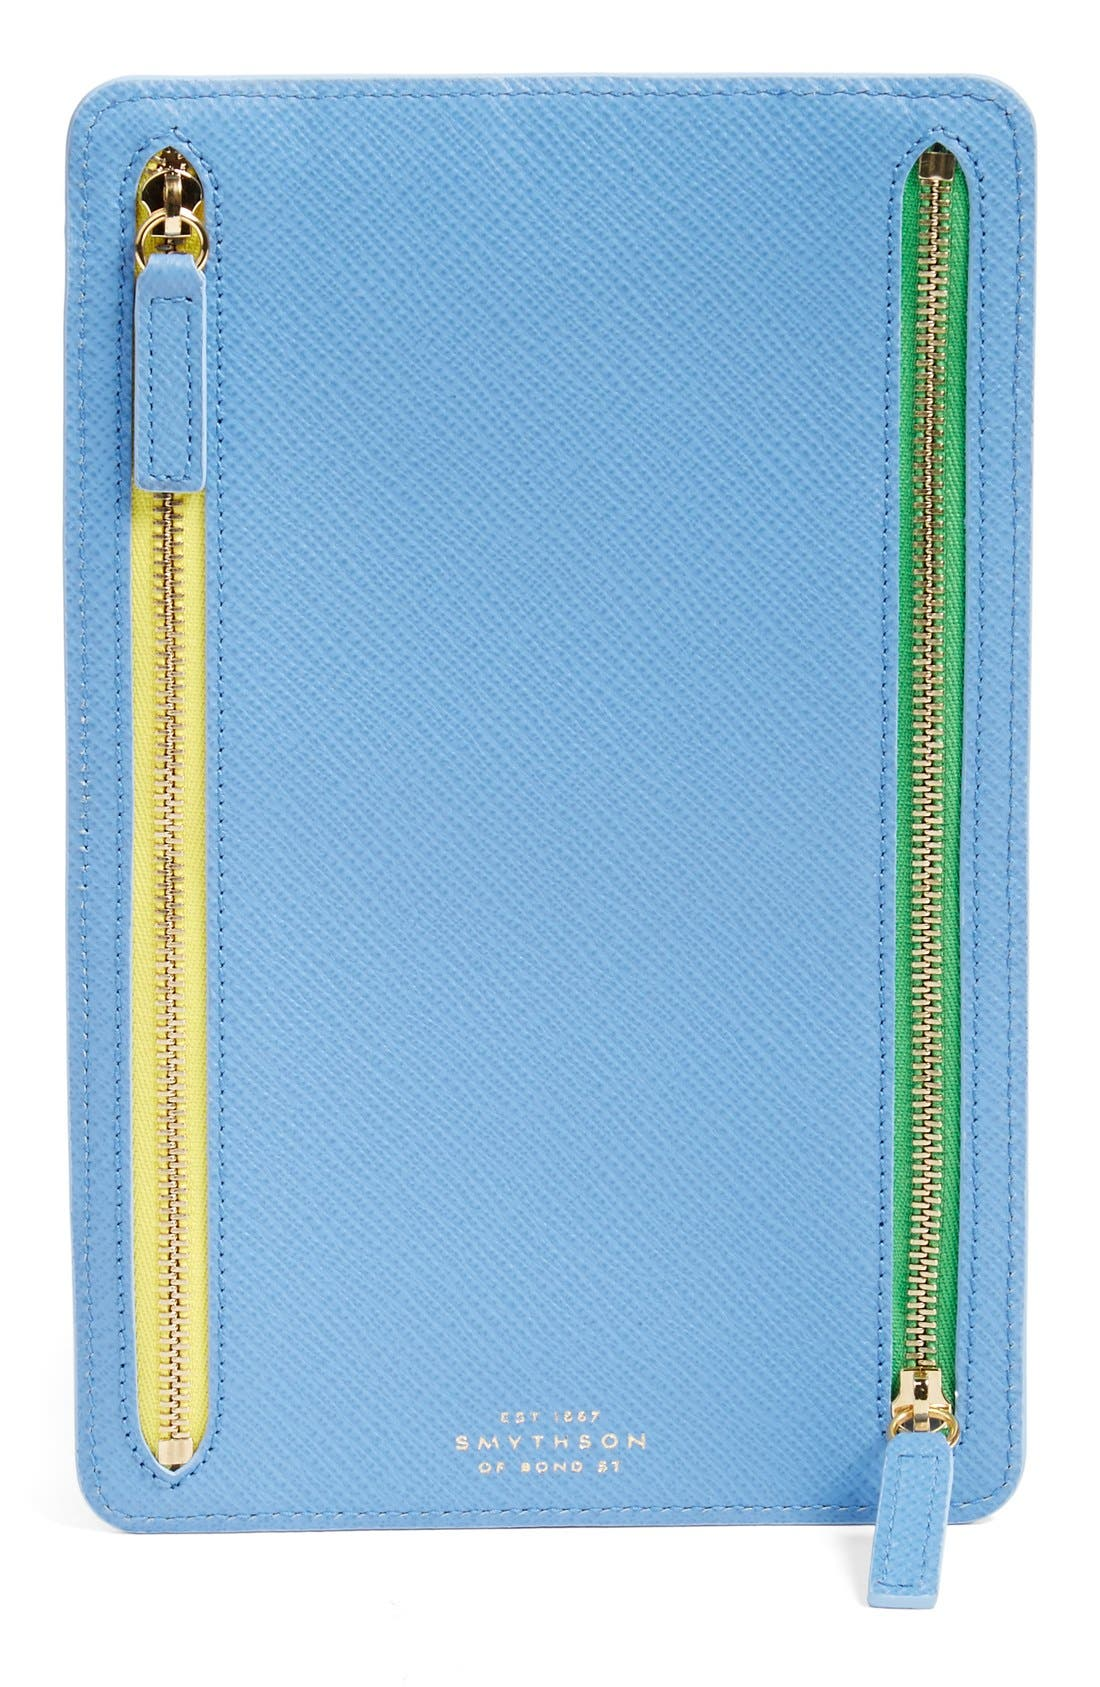 'Panama' Zip Currency Case,                         Main,                         color, NILE BLUE